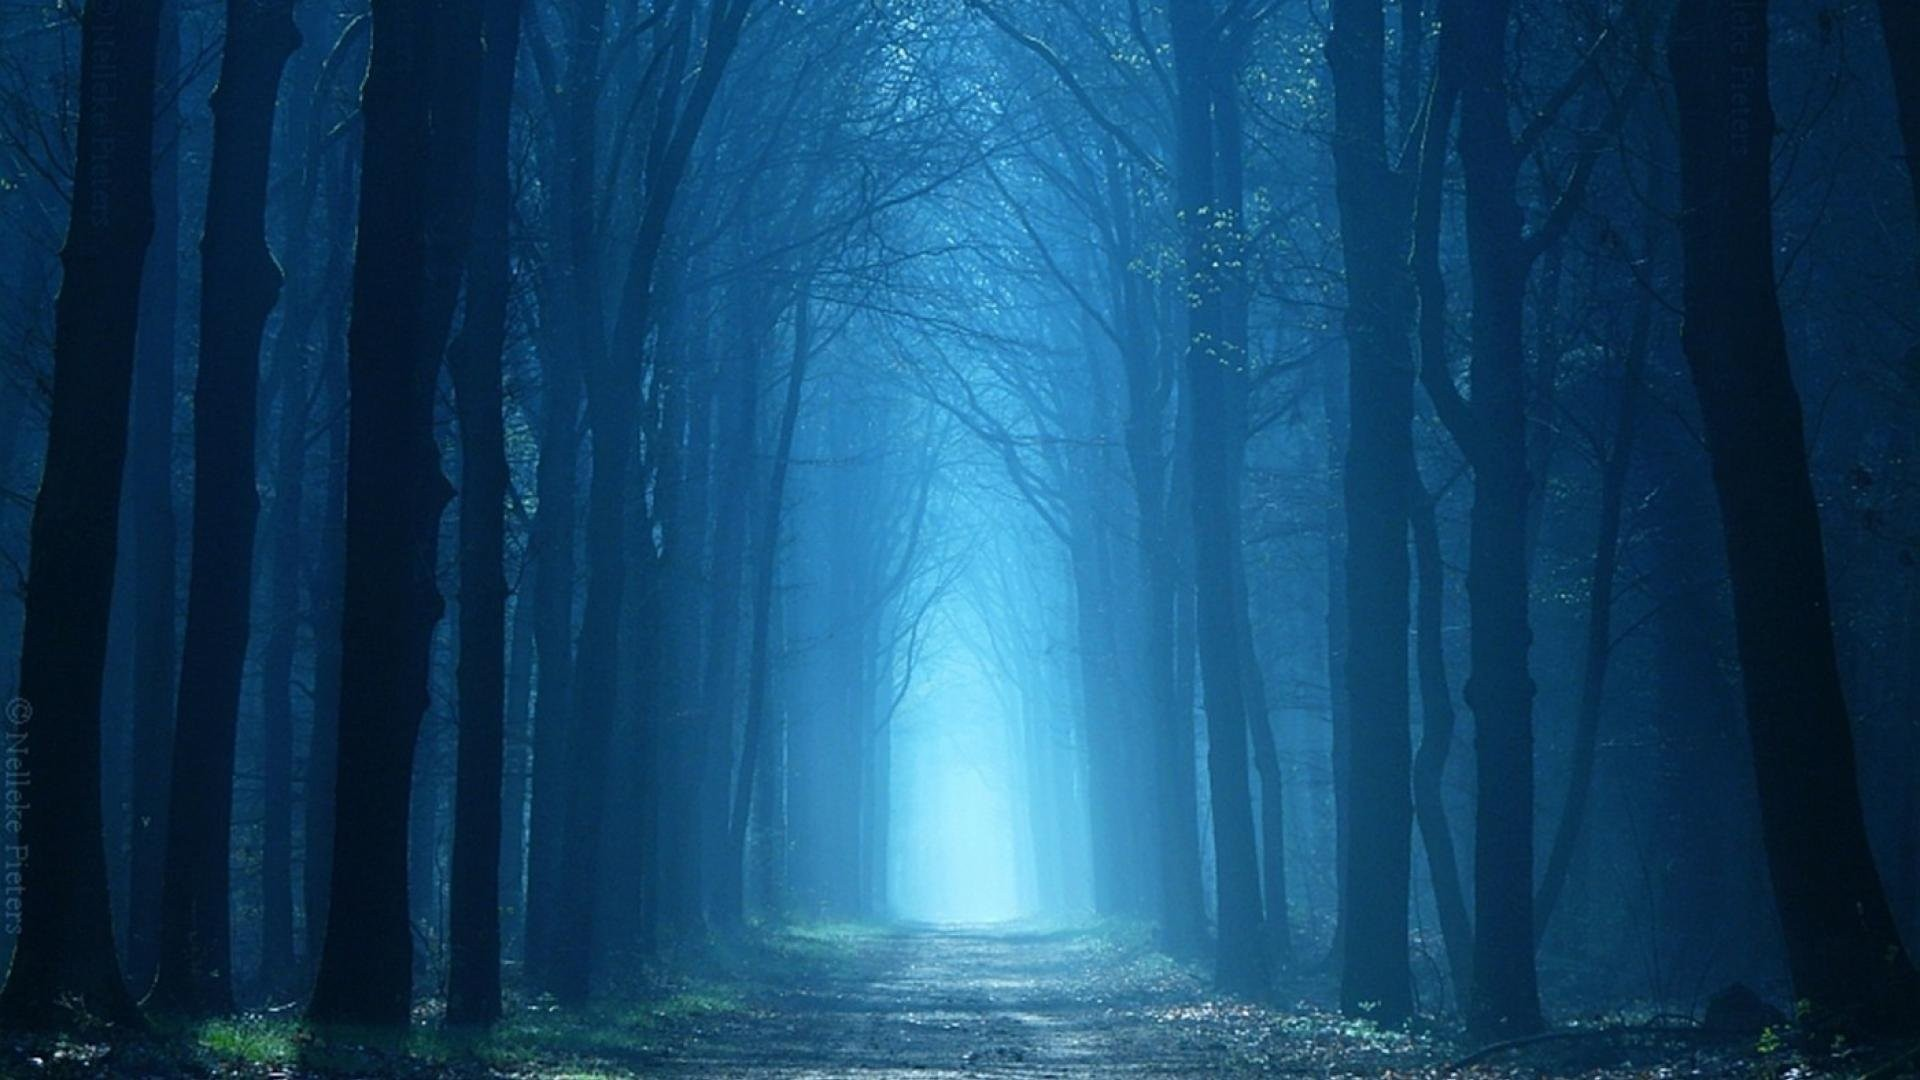 299178762_trees_forest_landscape_road_fog_path_nature_woods_tree_wallpapers_hd_ipad_122_145lo.jpg